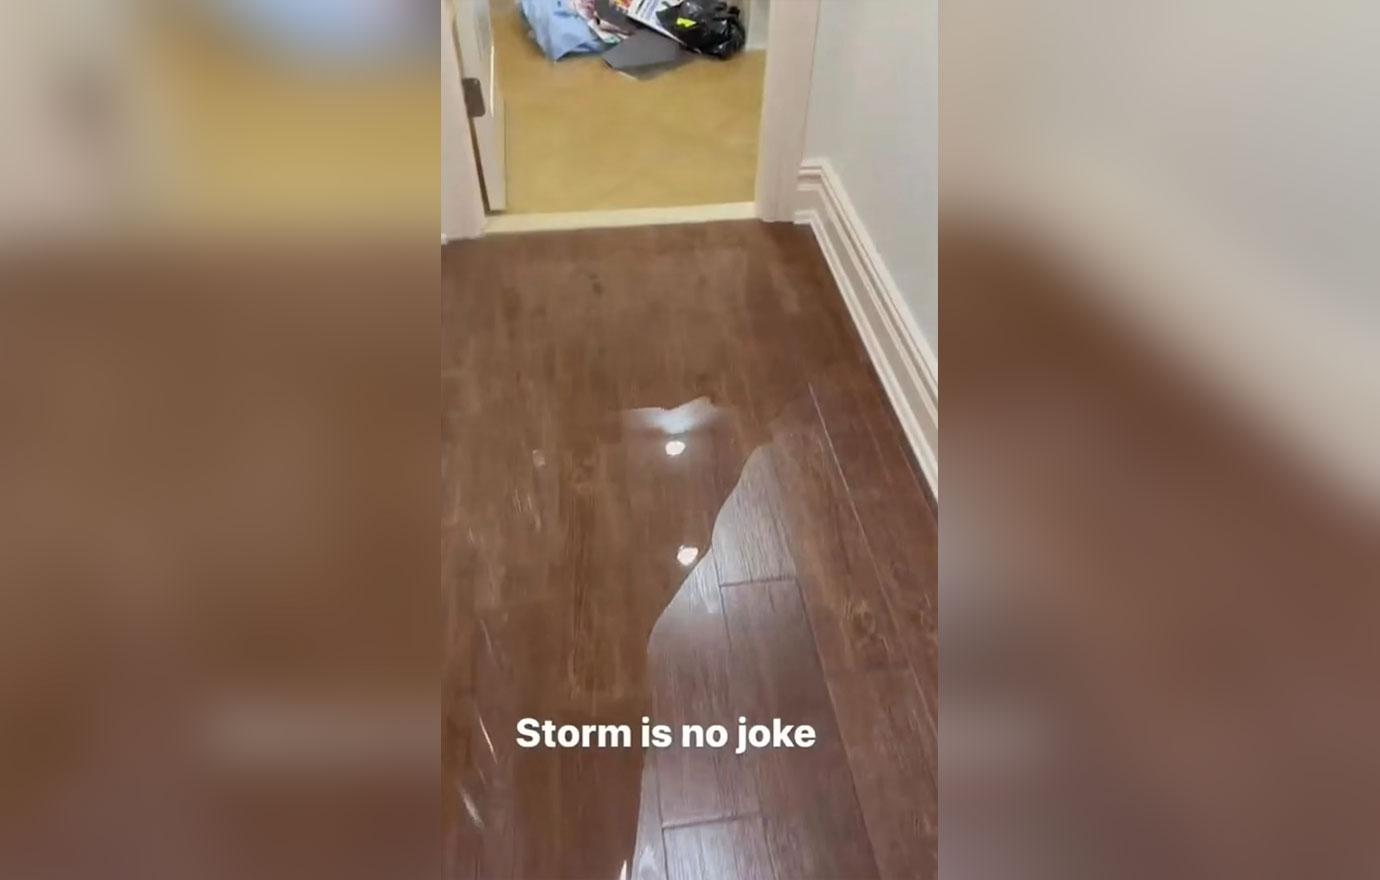 cardi-b-shows-her-house-got-flooded-03-1630605536696